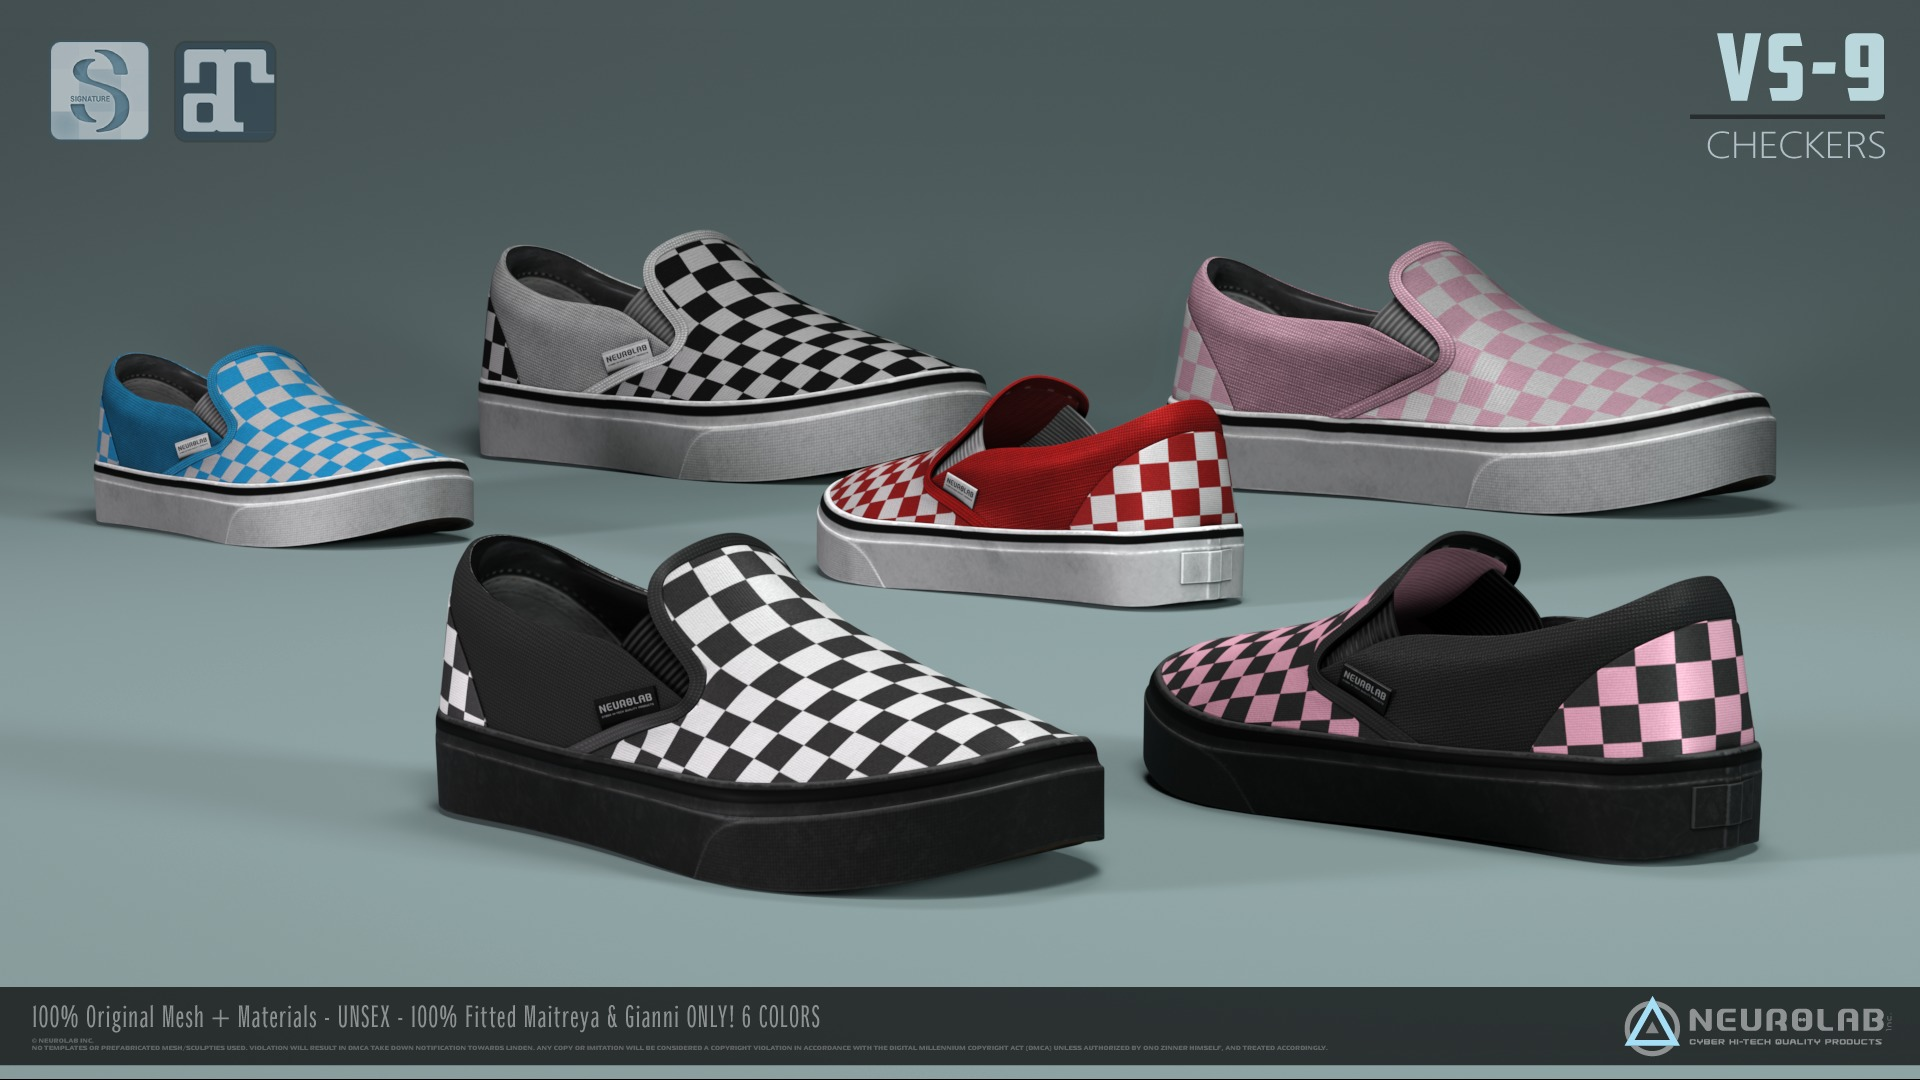 VS-9 SHOES CHECKERS (FITTED) *NEW*